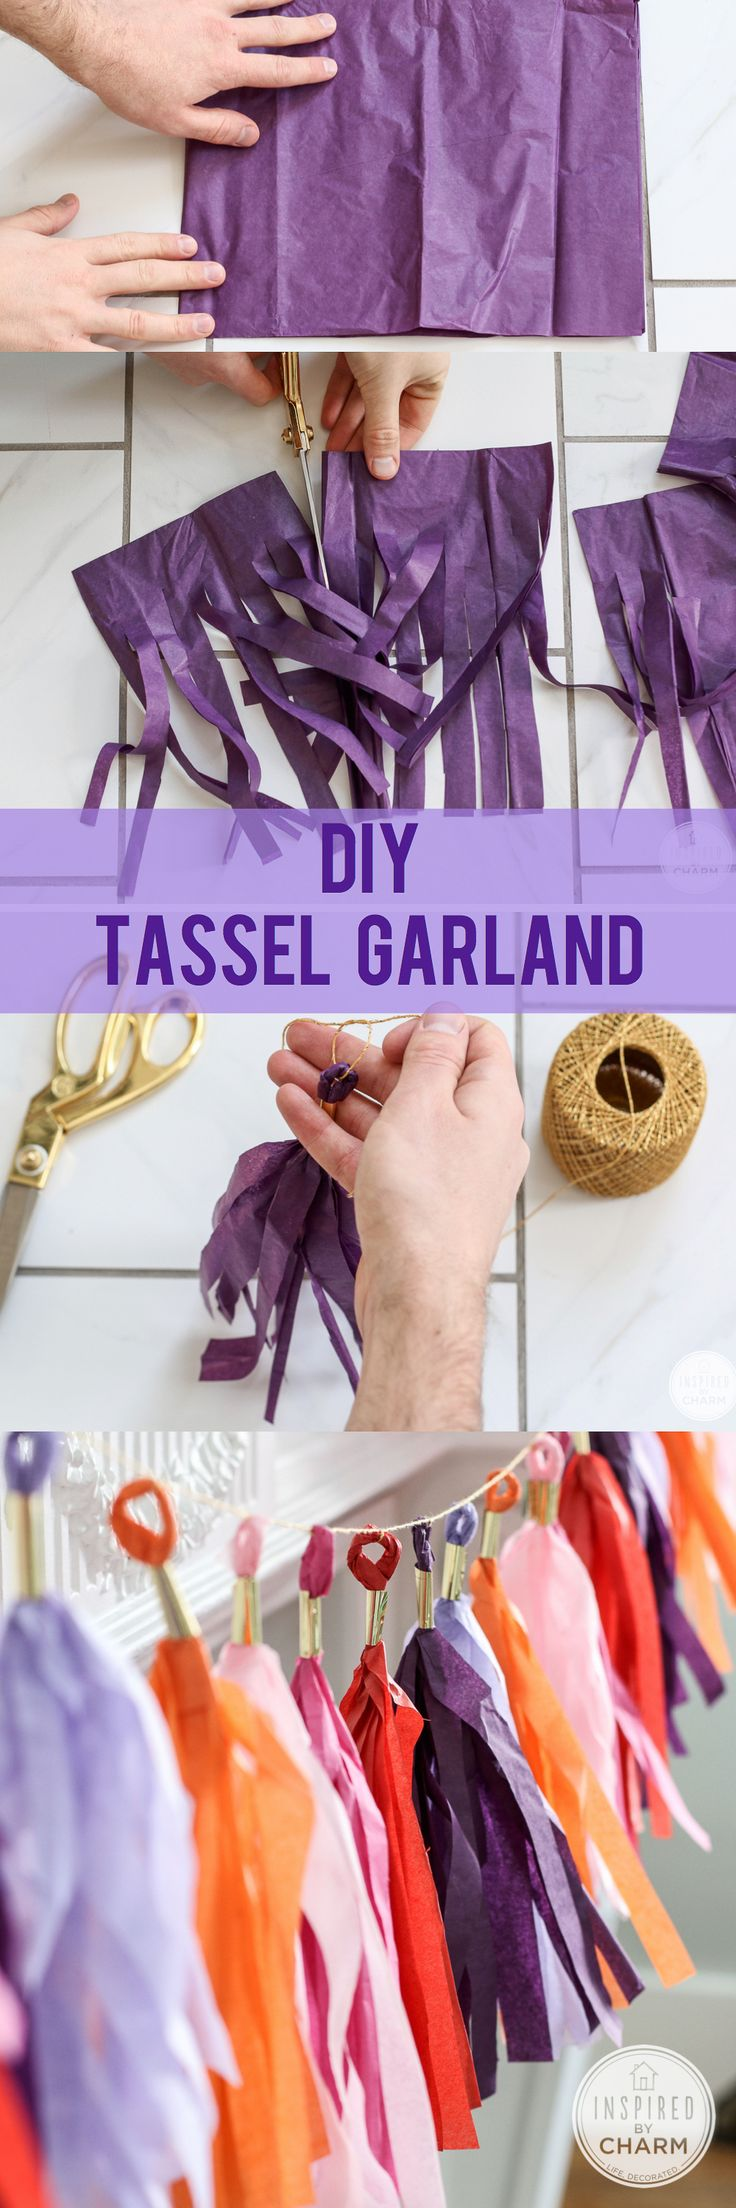 Graduation table decorations homemade - Diy Tassel Garland Diy Classroom Decorationshouse Party Decorationssuper Hero Decorationsgraduation Table